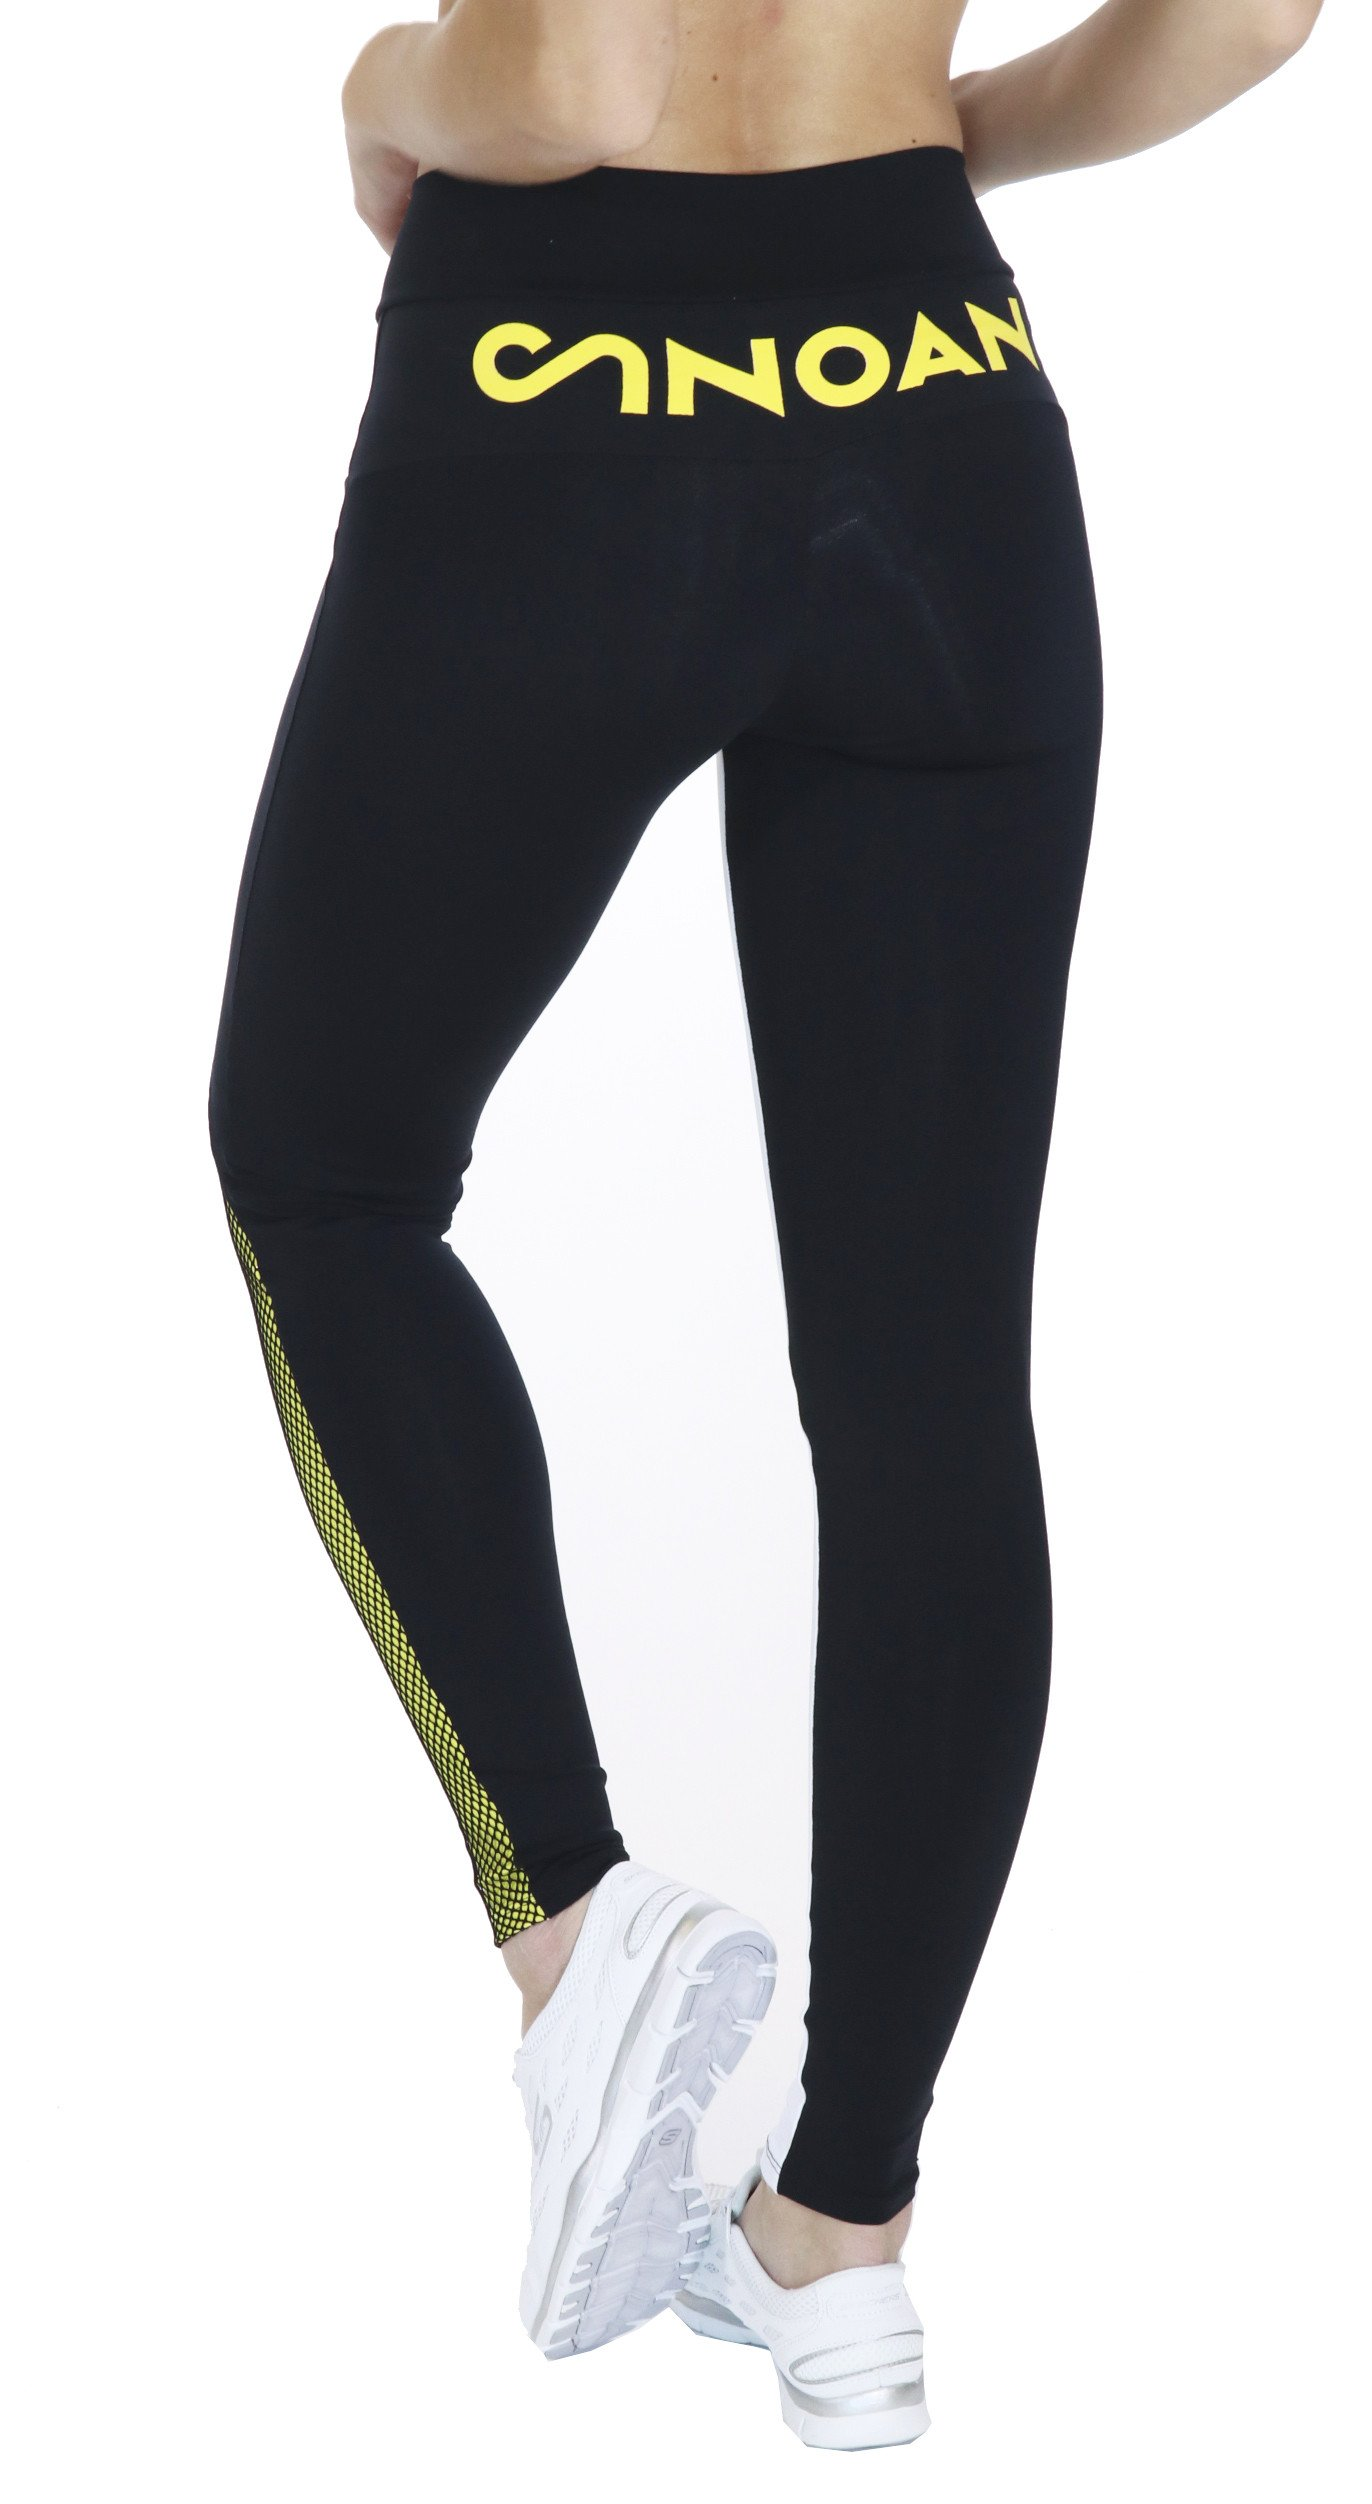 Brazilian Workout Legging - Vibes by Canoan (Image #3)